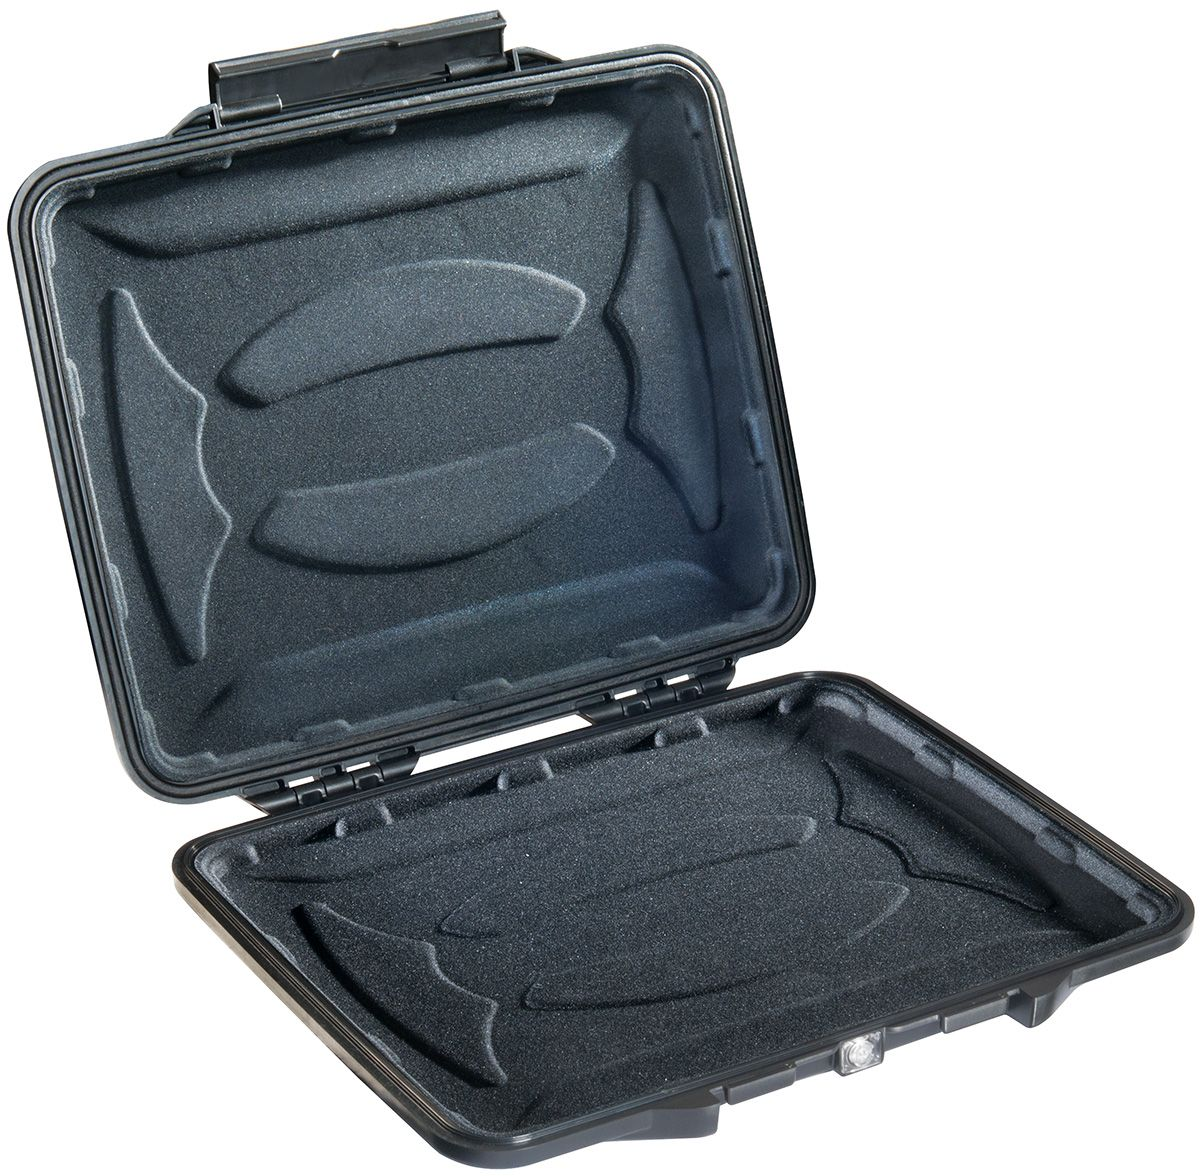 Pelican™ 1065CC Tablet HardBack™ Case Designed to protect